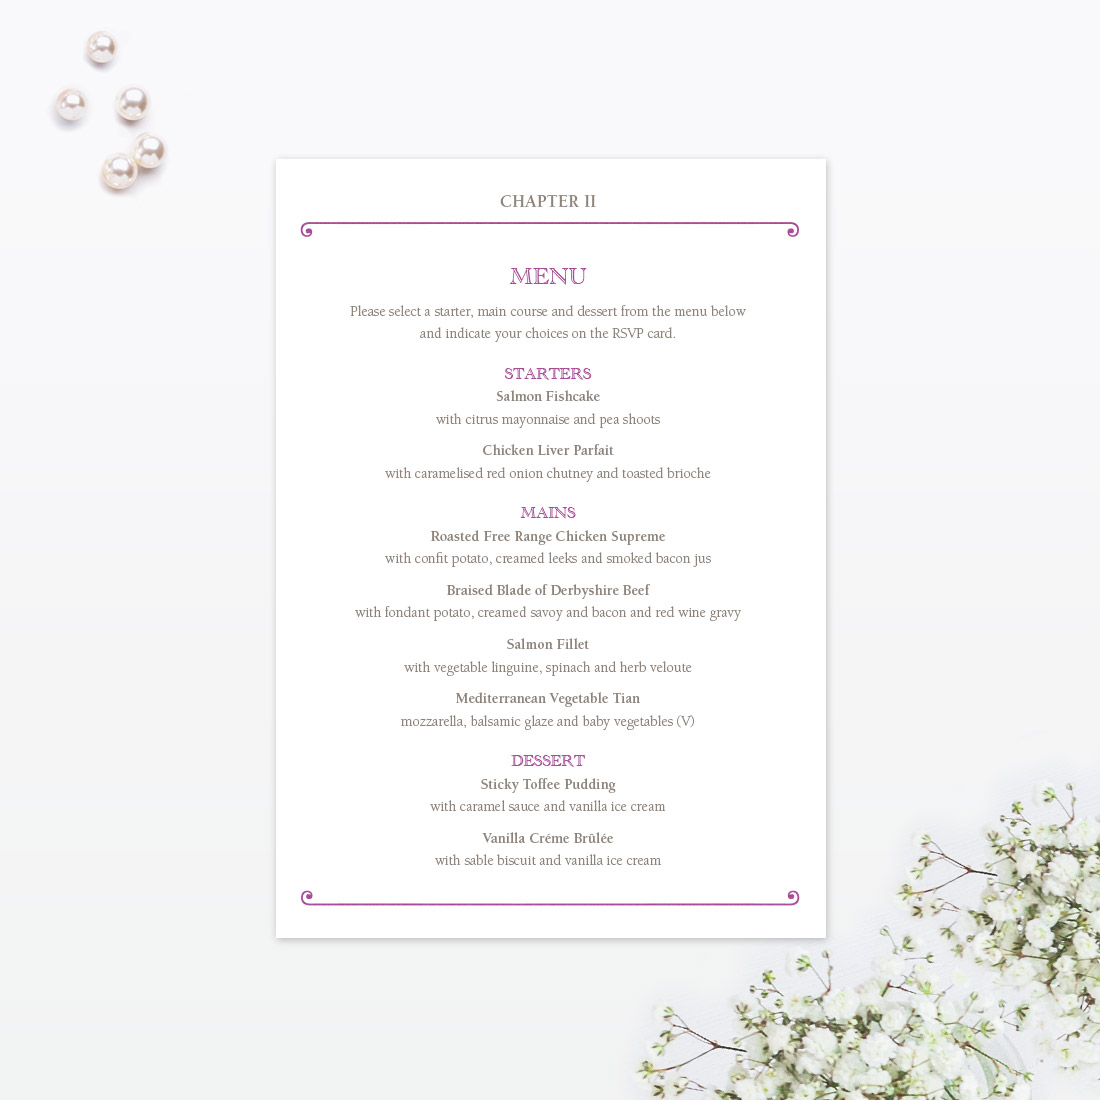 Fairytale Invitation Menu - Love Invited - Luxury Wedding ...